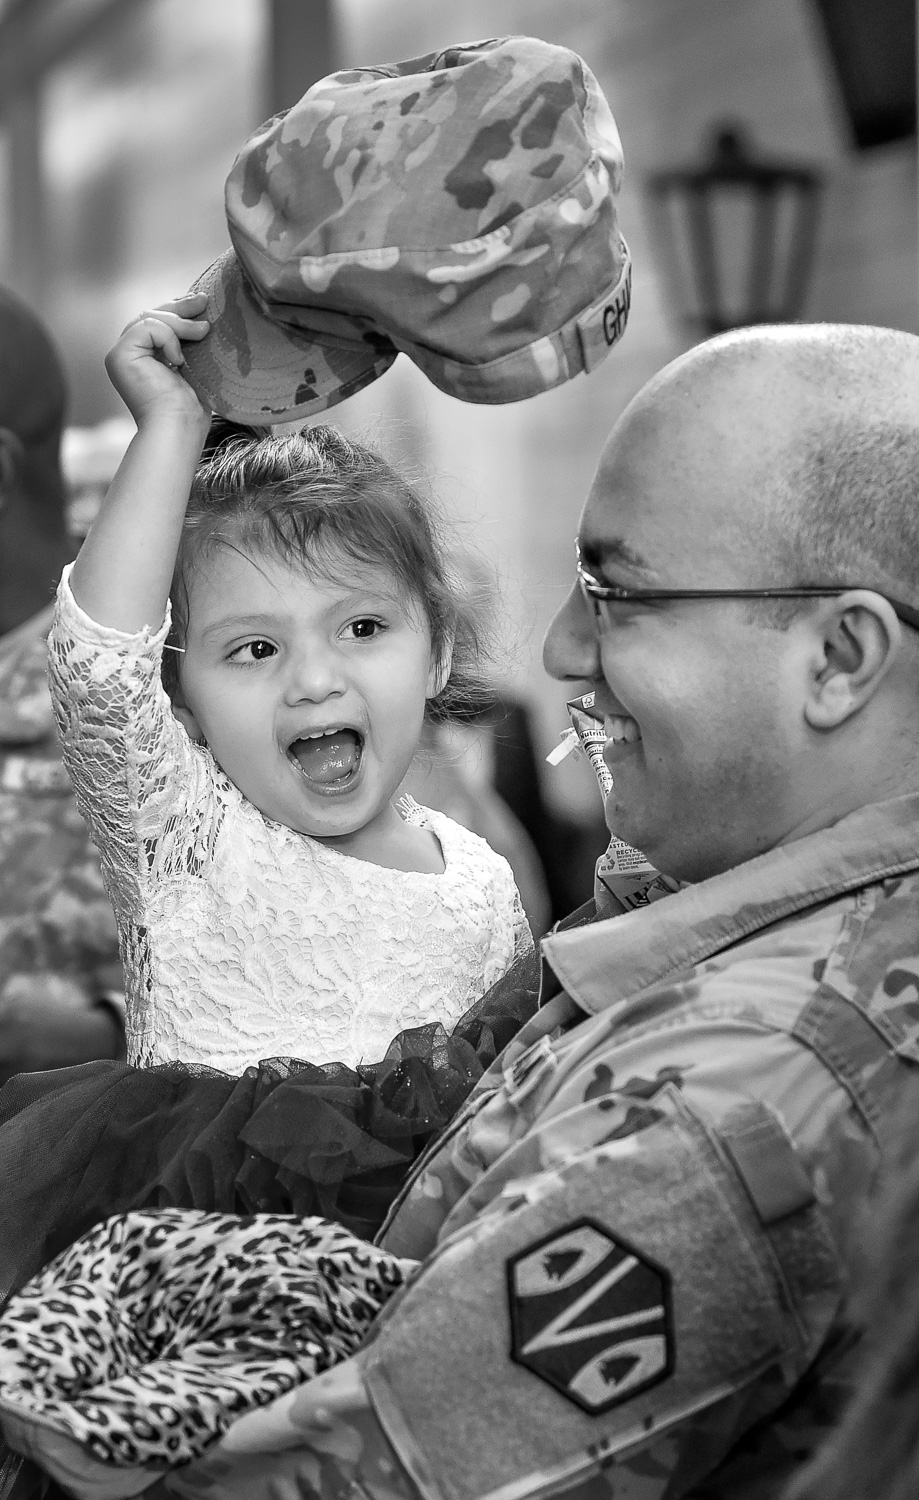 Nikon D4s, 1/250 @ f/4, ISO 2500, 70-200mm  Nora Charony, 2, plays with her father Omid Charony's, of Hanscom, hat at the conclusion of the 151st Regional Support Group Deployment Ceremony at Reading High School on Sunday, Jan. 21, 2018. Soldiers from the 151st Regional Support Group, Massachusetts Army National Guard will soon be deployed to southwest Asia for nine months. [Wicked Local Staff Photo / David Sokol]